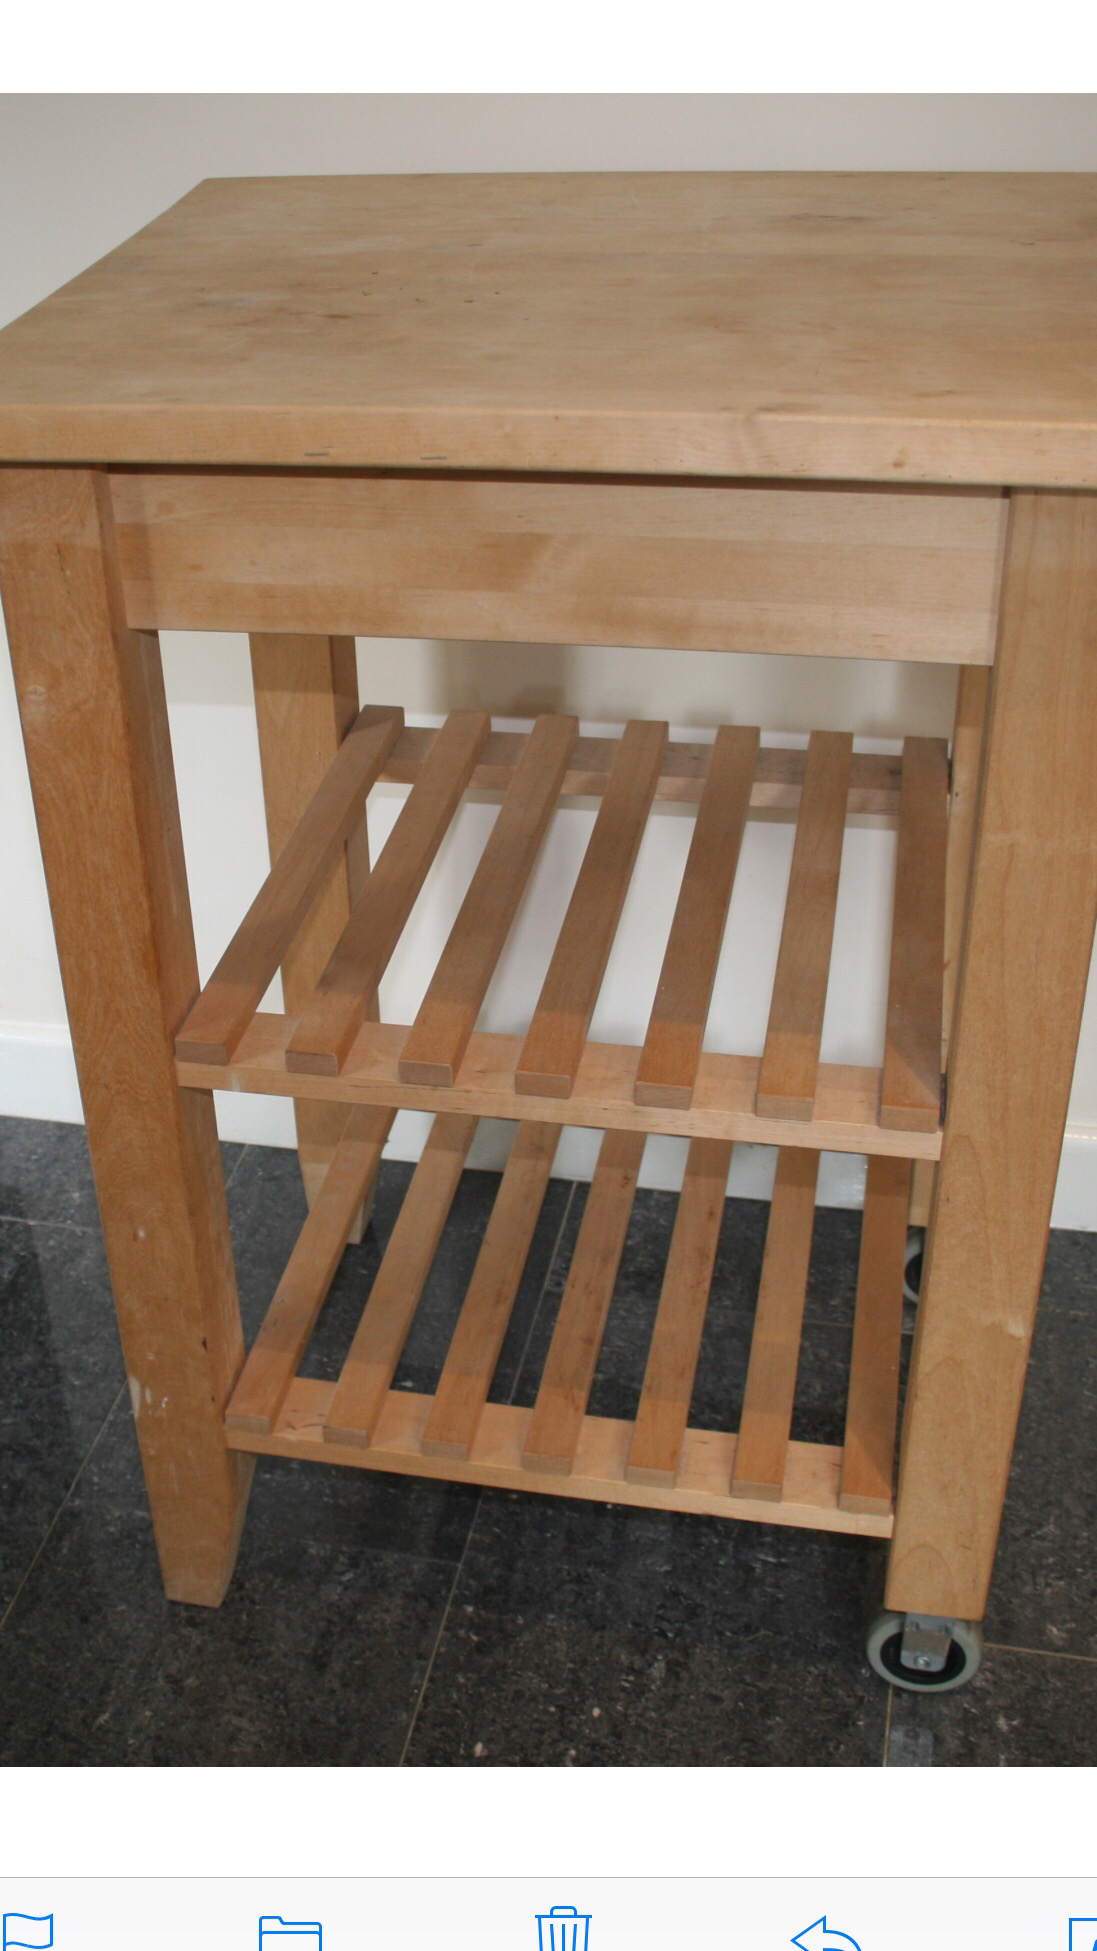 butchers block - Second Hand Kitchen Furniture Buy and Sell in